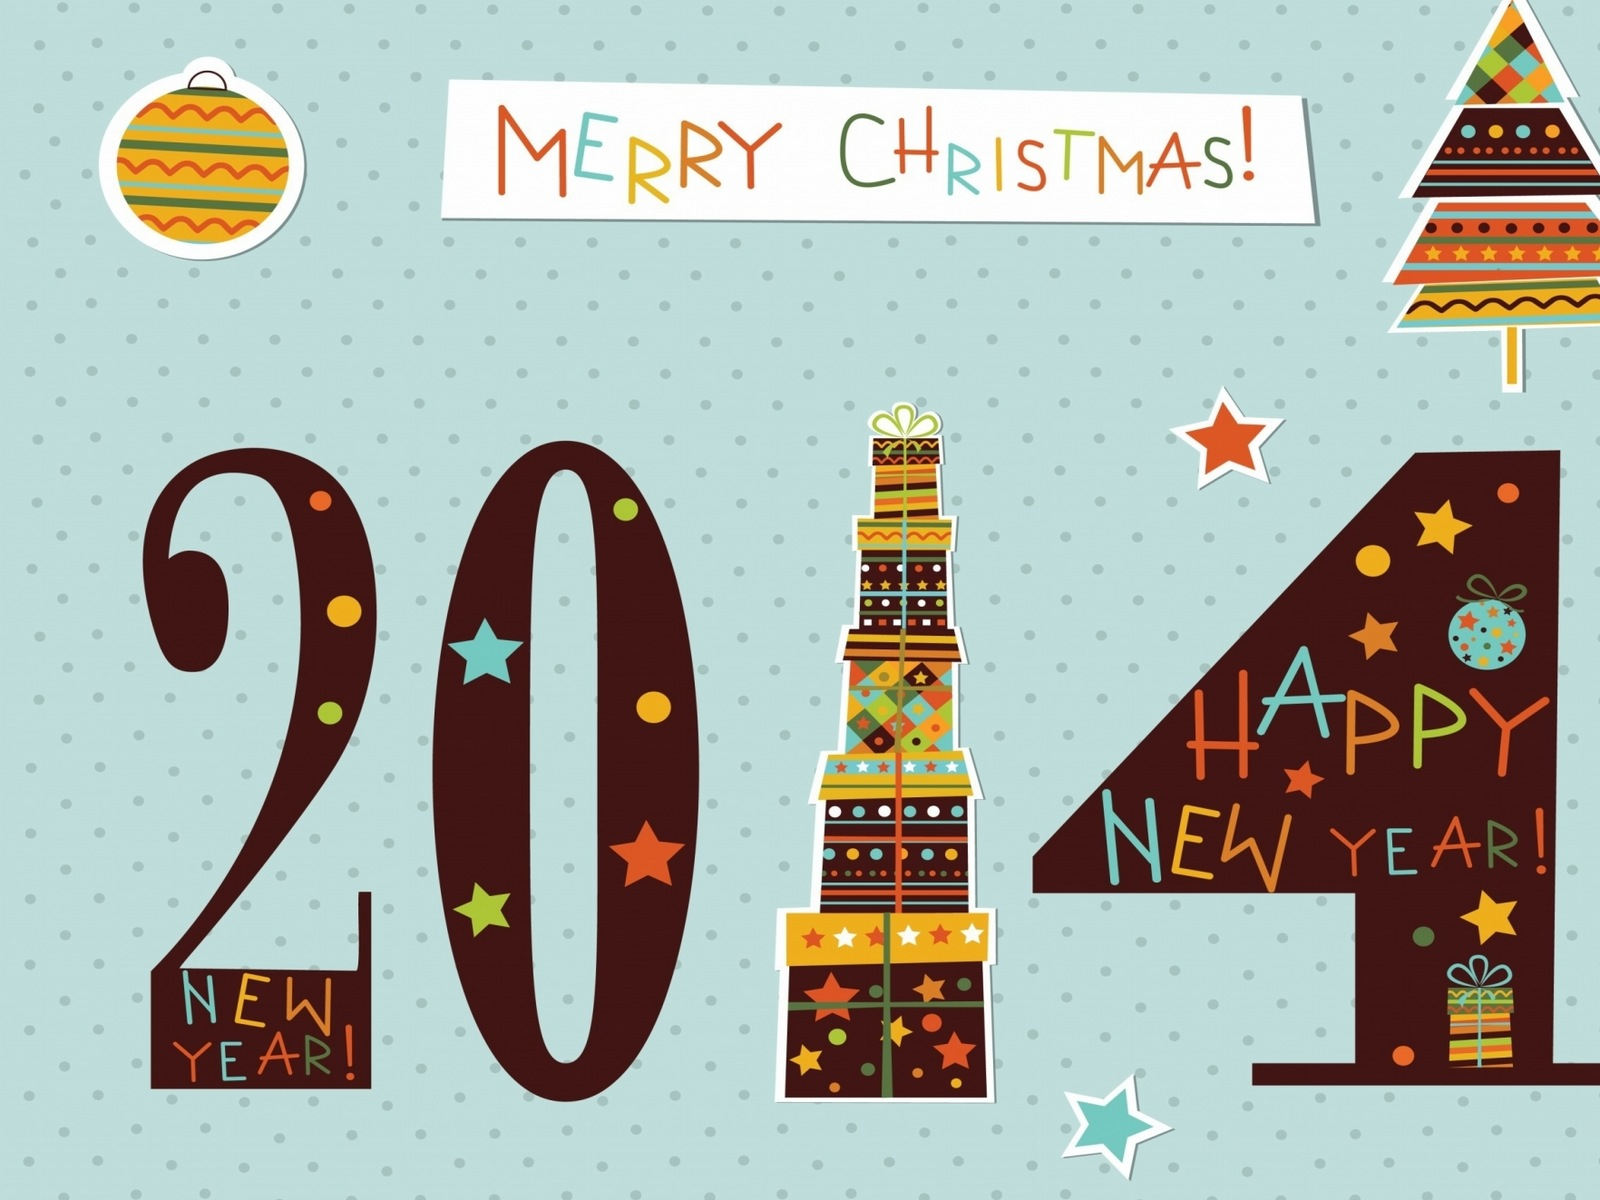 Merry Christmas and Happy New Year 2014 Wallpaper-1600x1200